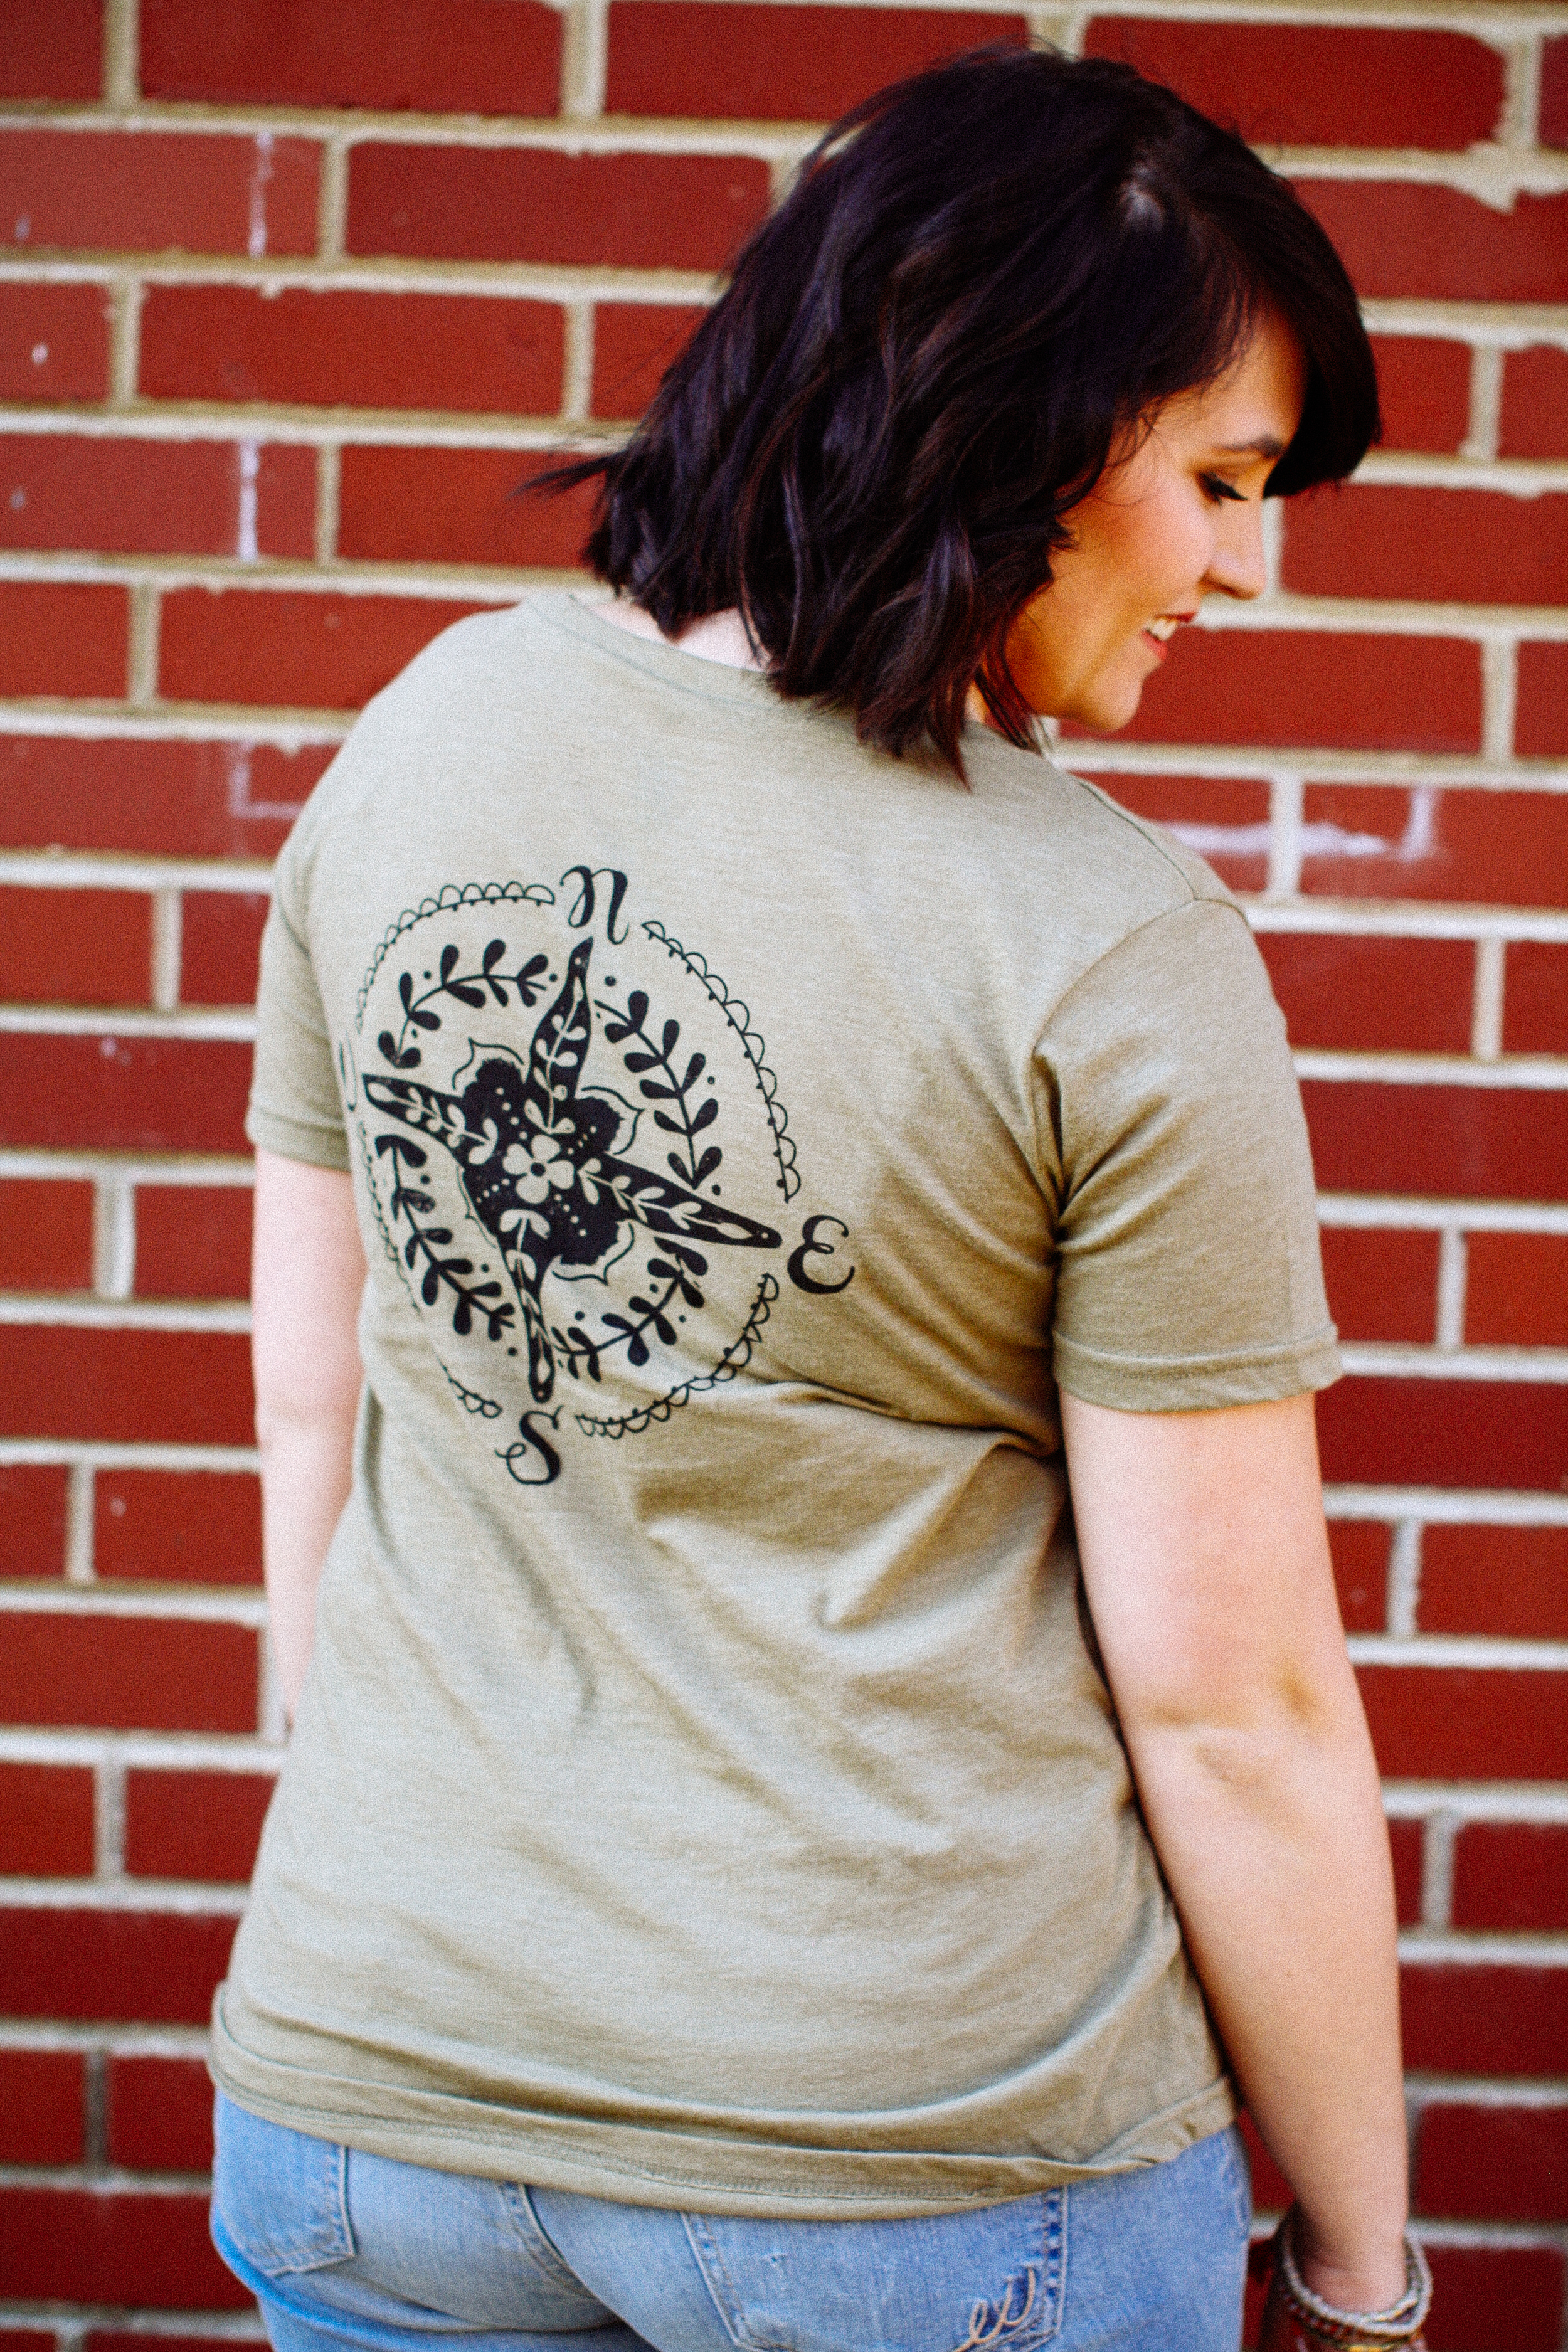 Follow Your Heart Natural Life Tee from Altar'd State via www.chelceytate.com